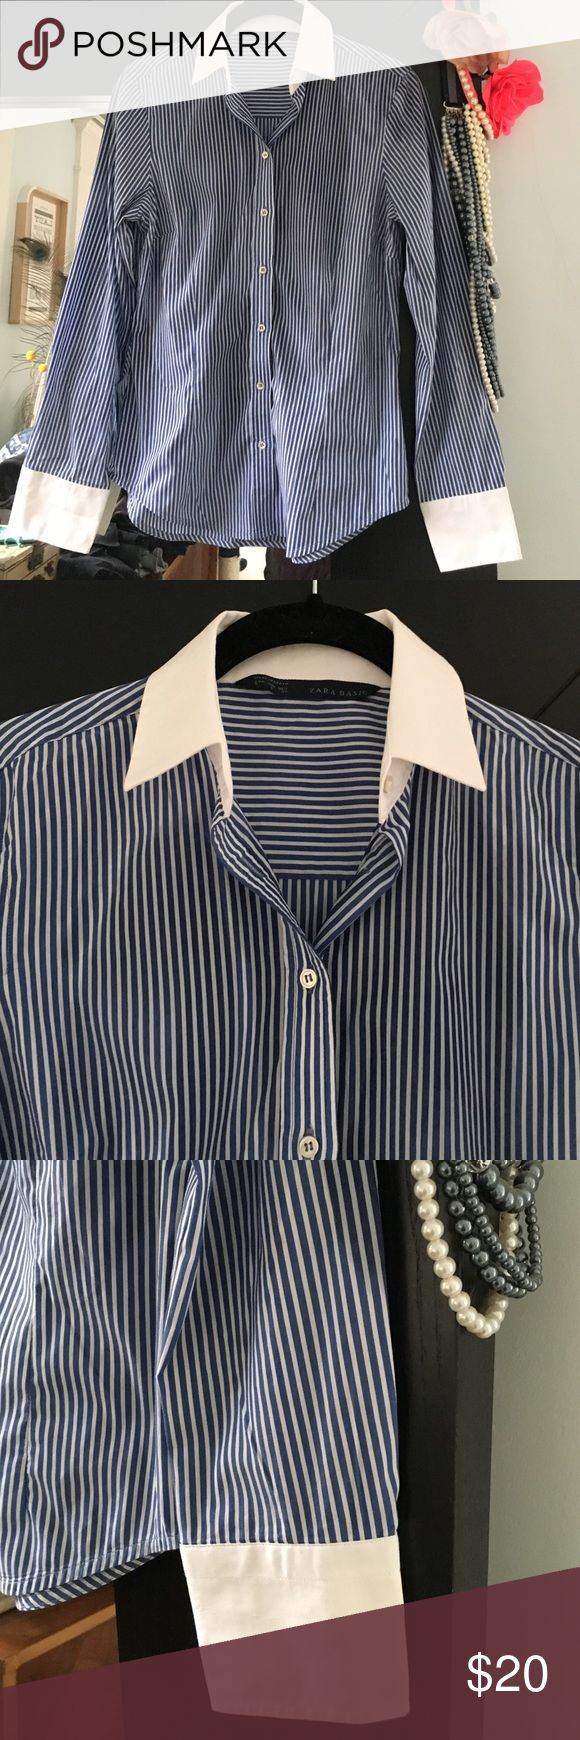 Zara Ladies' Blue & White Shirt Blue and white vertical striped button down cotton shirt with contrasting white collar and cuffs. Perfect for work, dress up with some pearls! Zara Tops Blouses